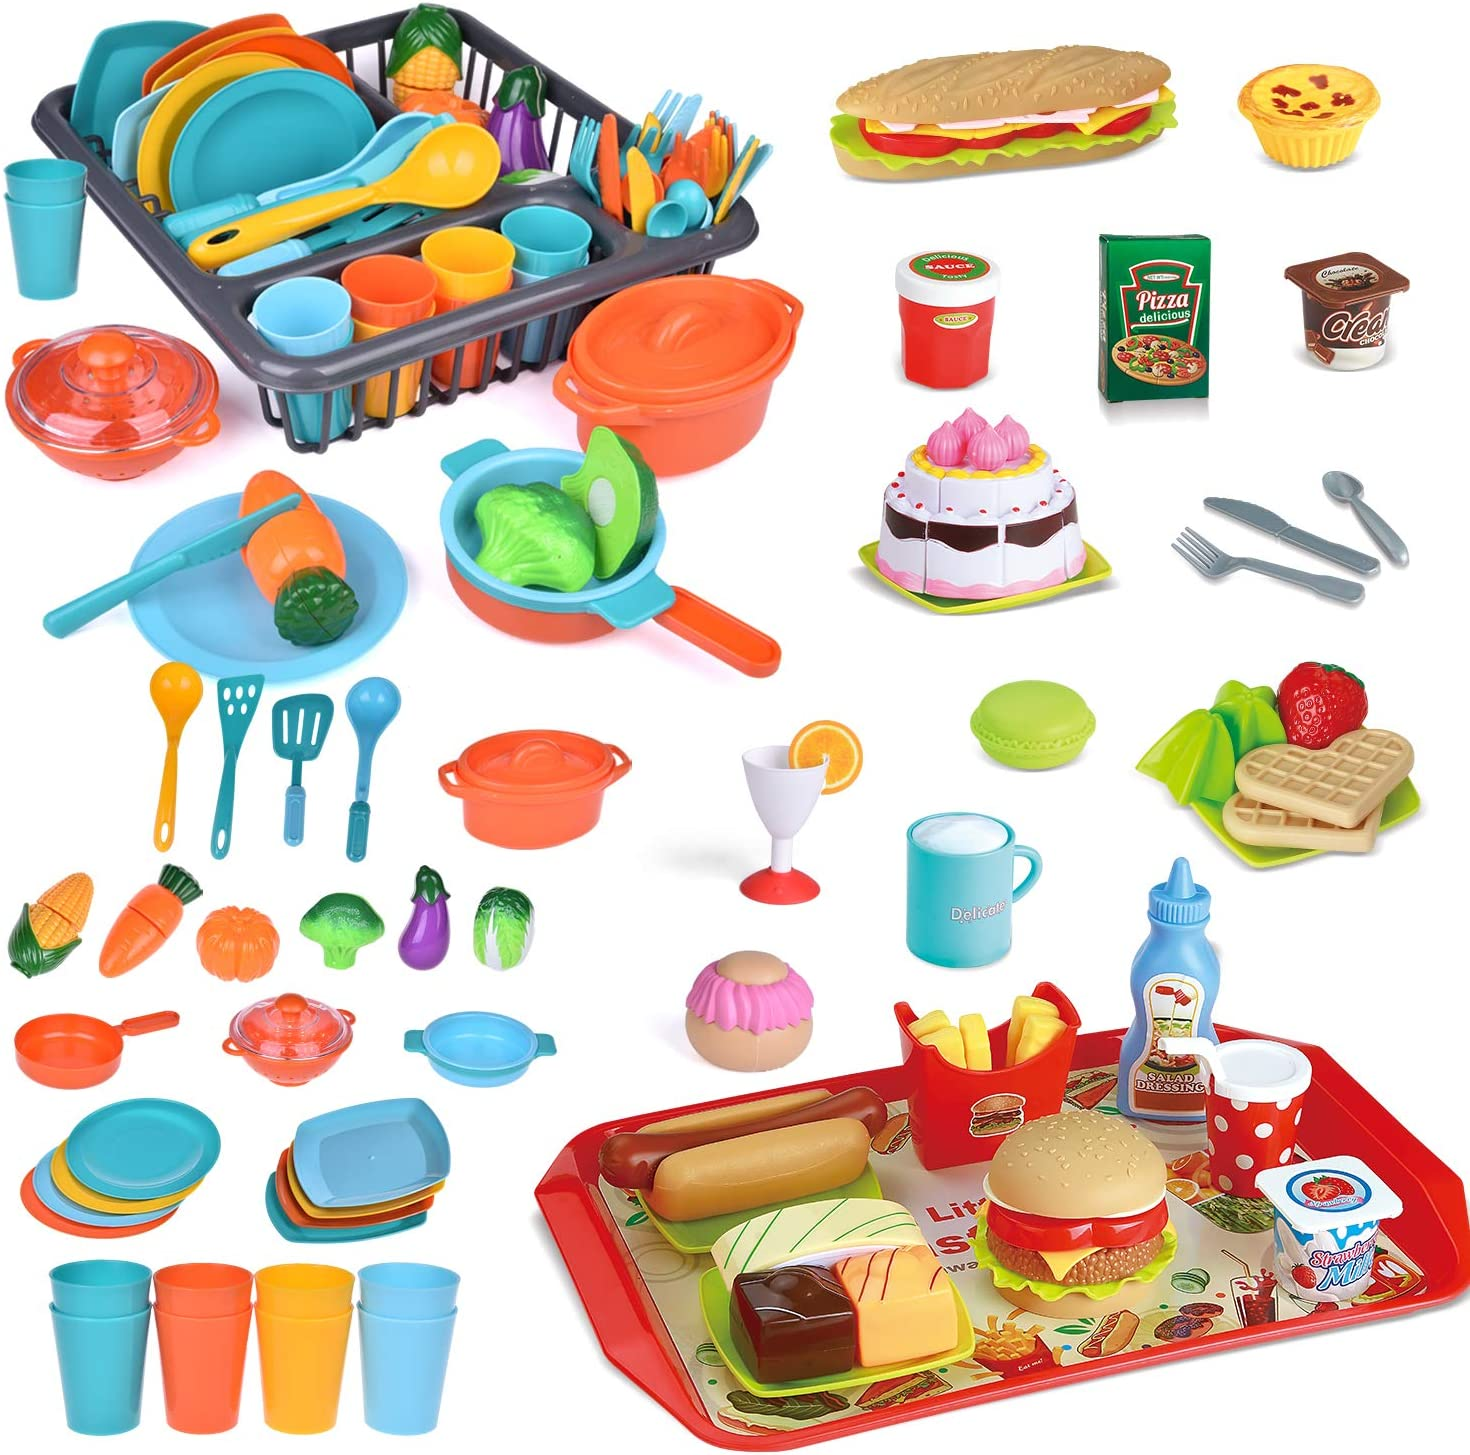 FUN LITTLE TOYS 49 PCs Play Food for Kids Kitchen with Play Kitchen Set, Play Kitchen Accessories